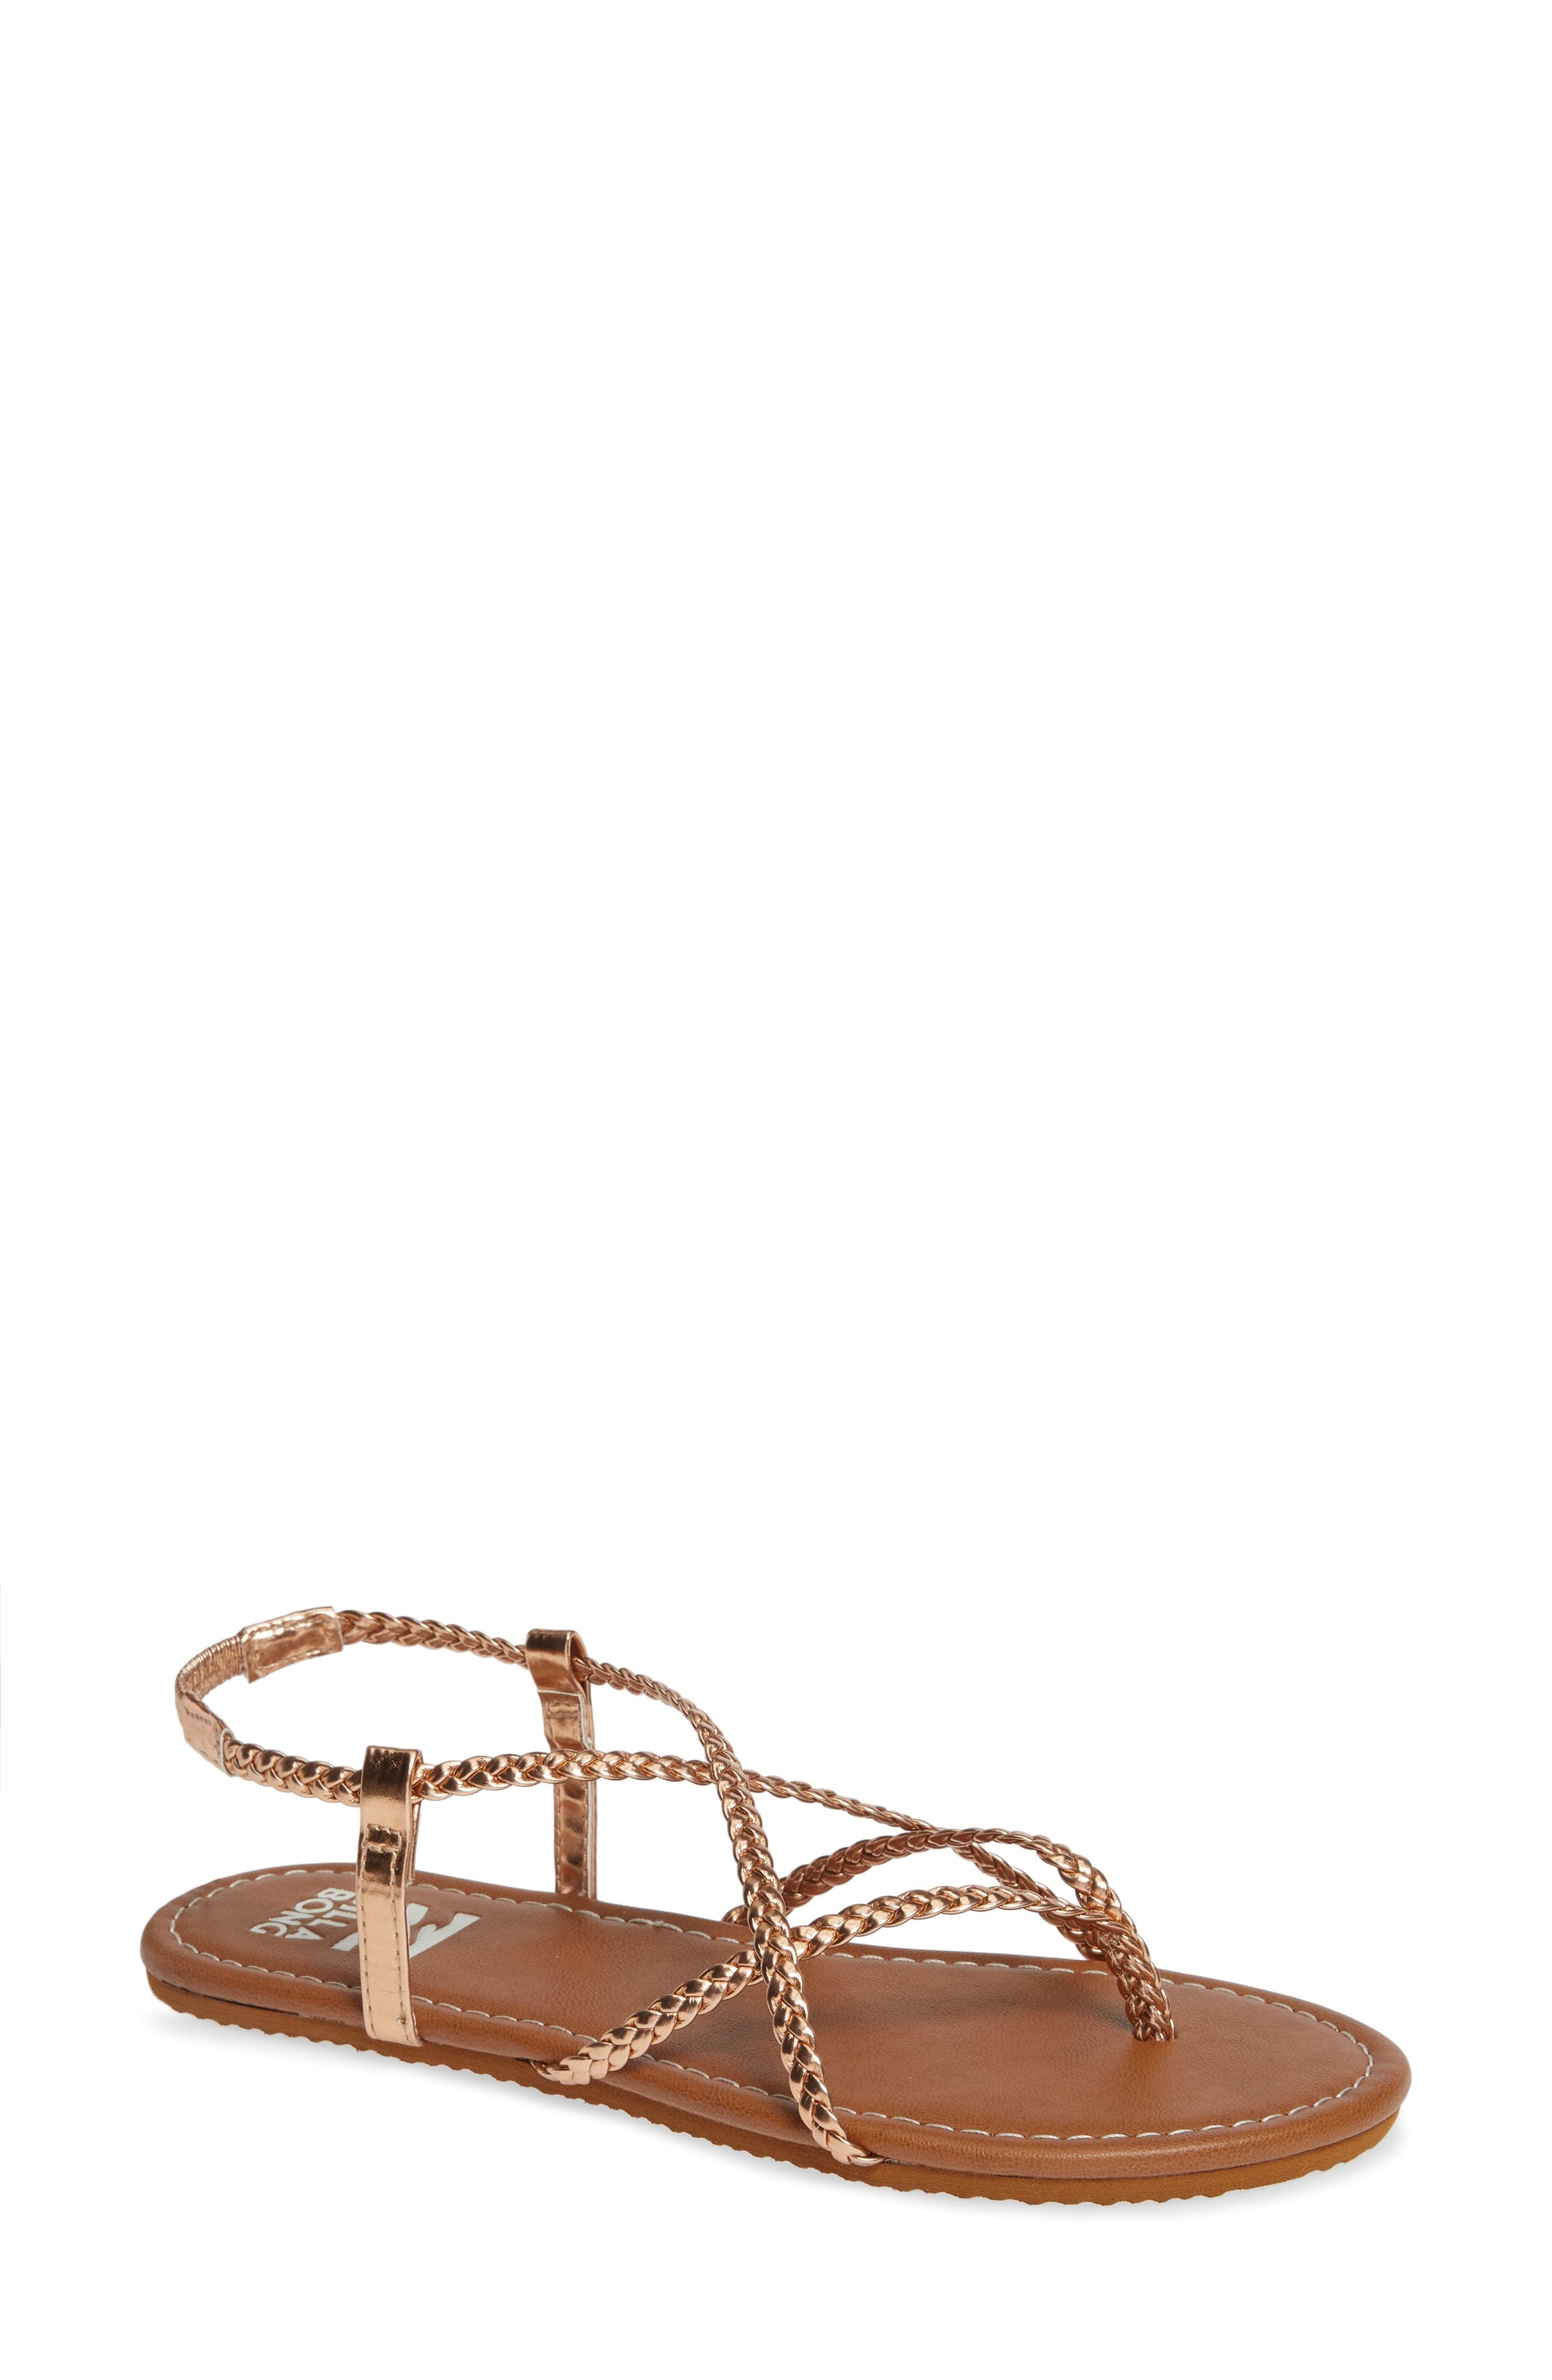 8d20faf1842f Crossing Over 2 Sandal. Gold Leather Thong Sandals by Billabong